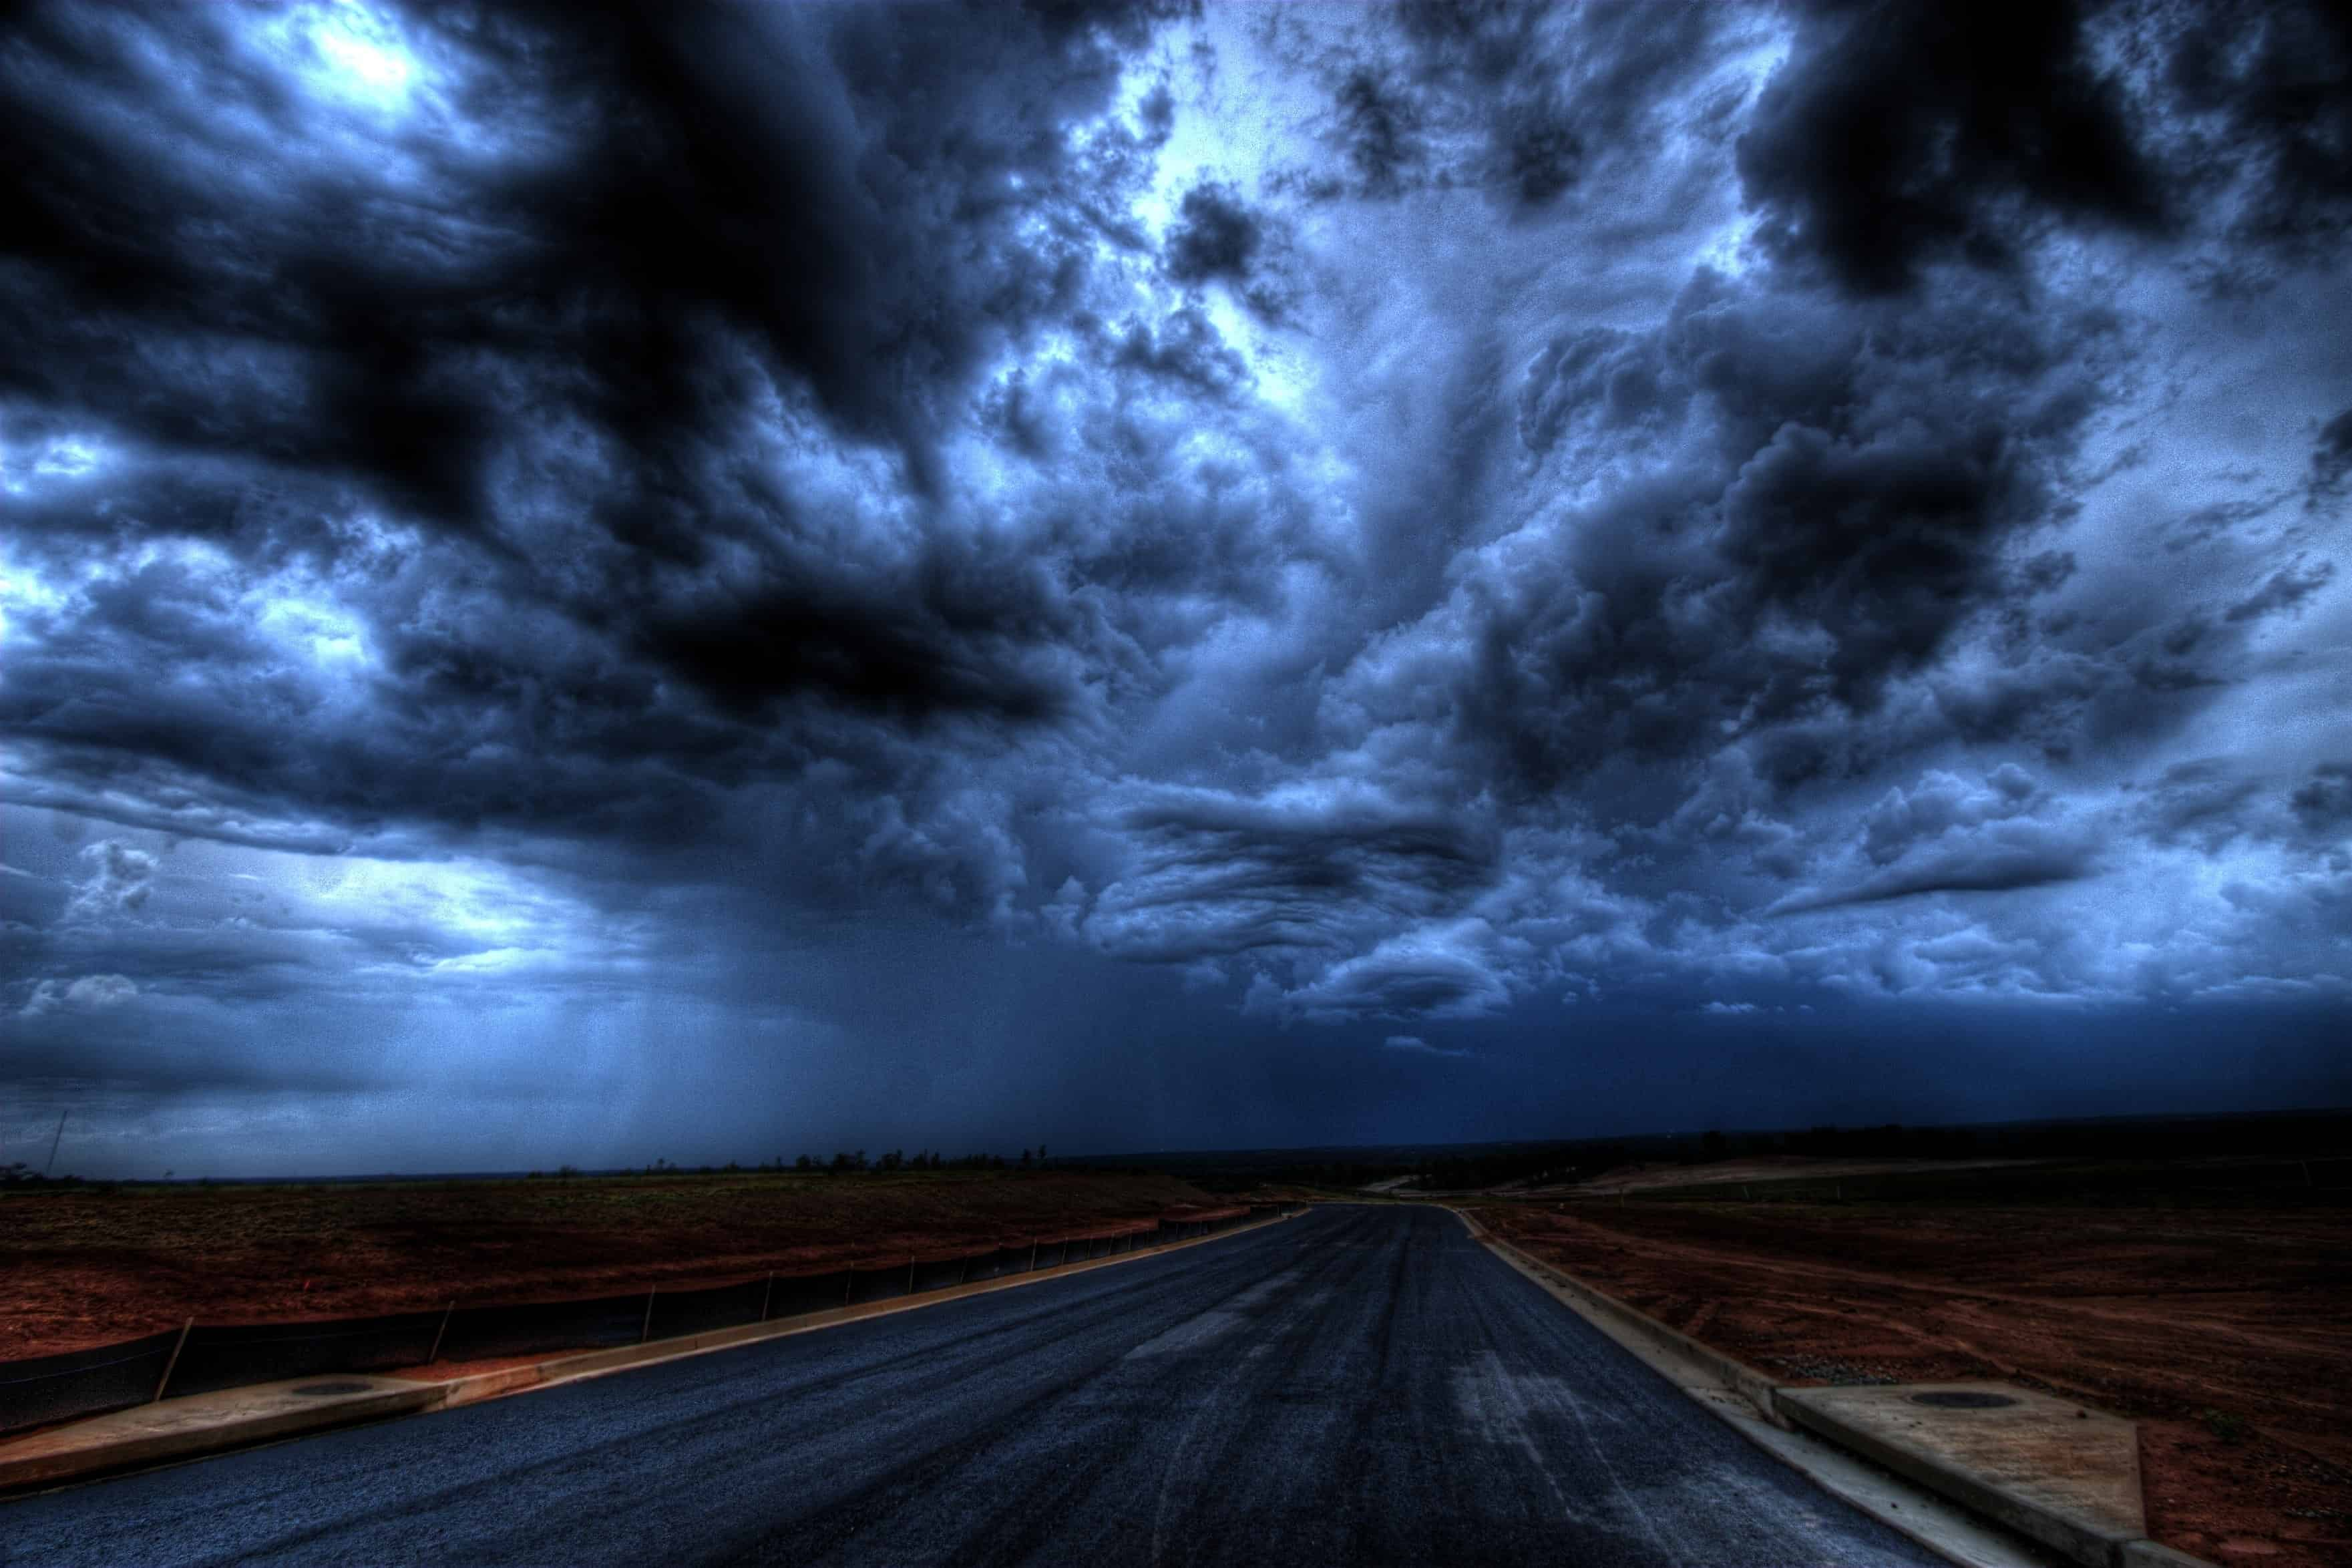 positive outlook is better than a negative storm clouds one